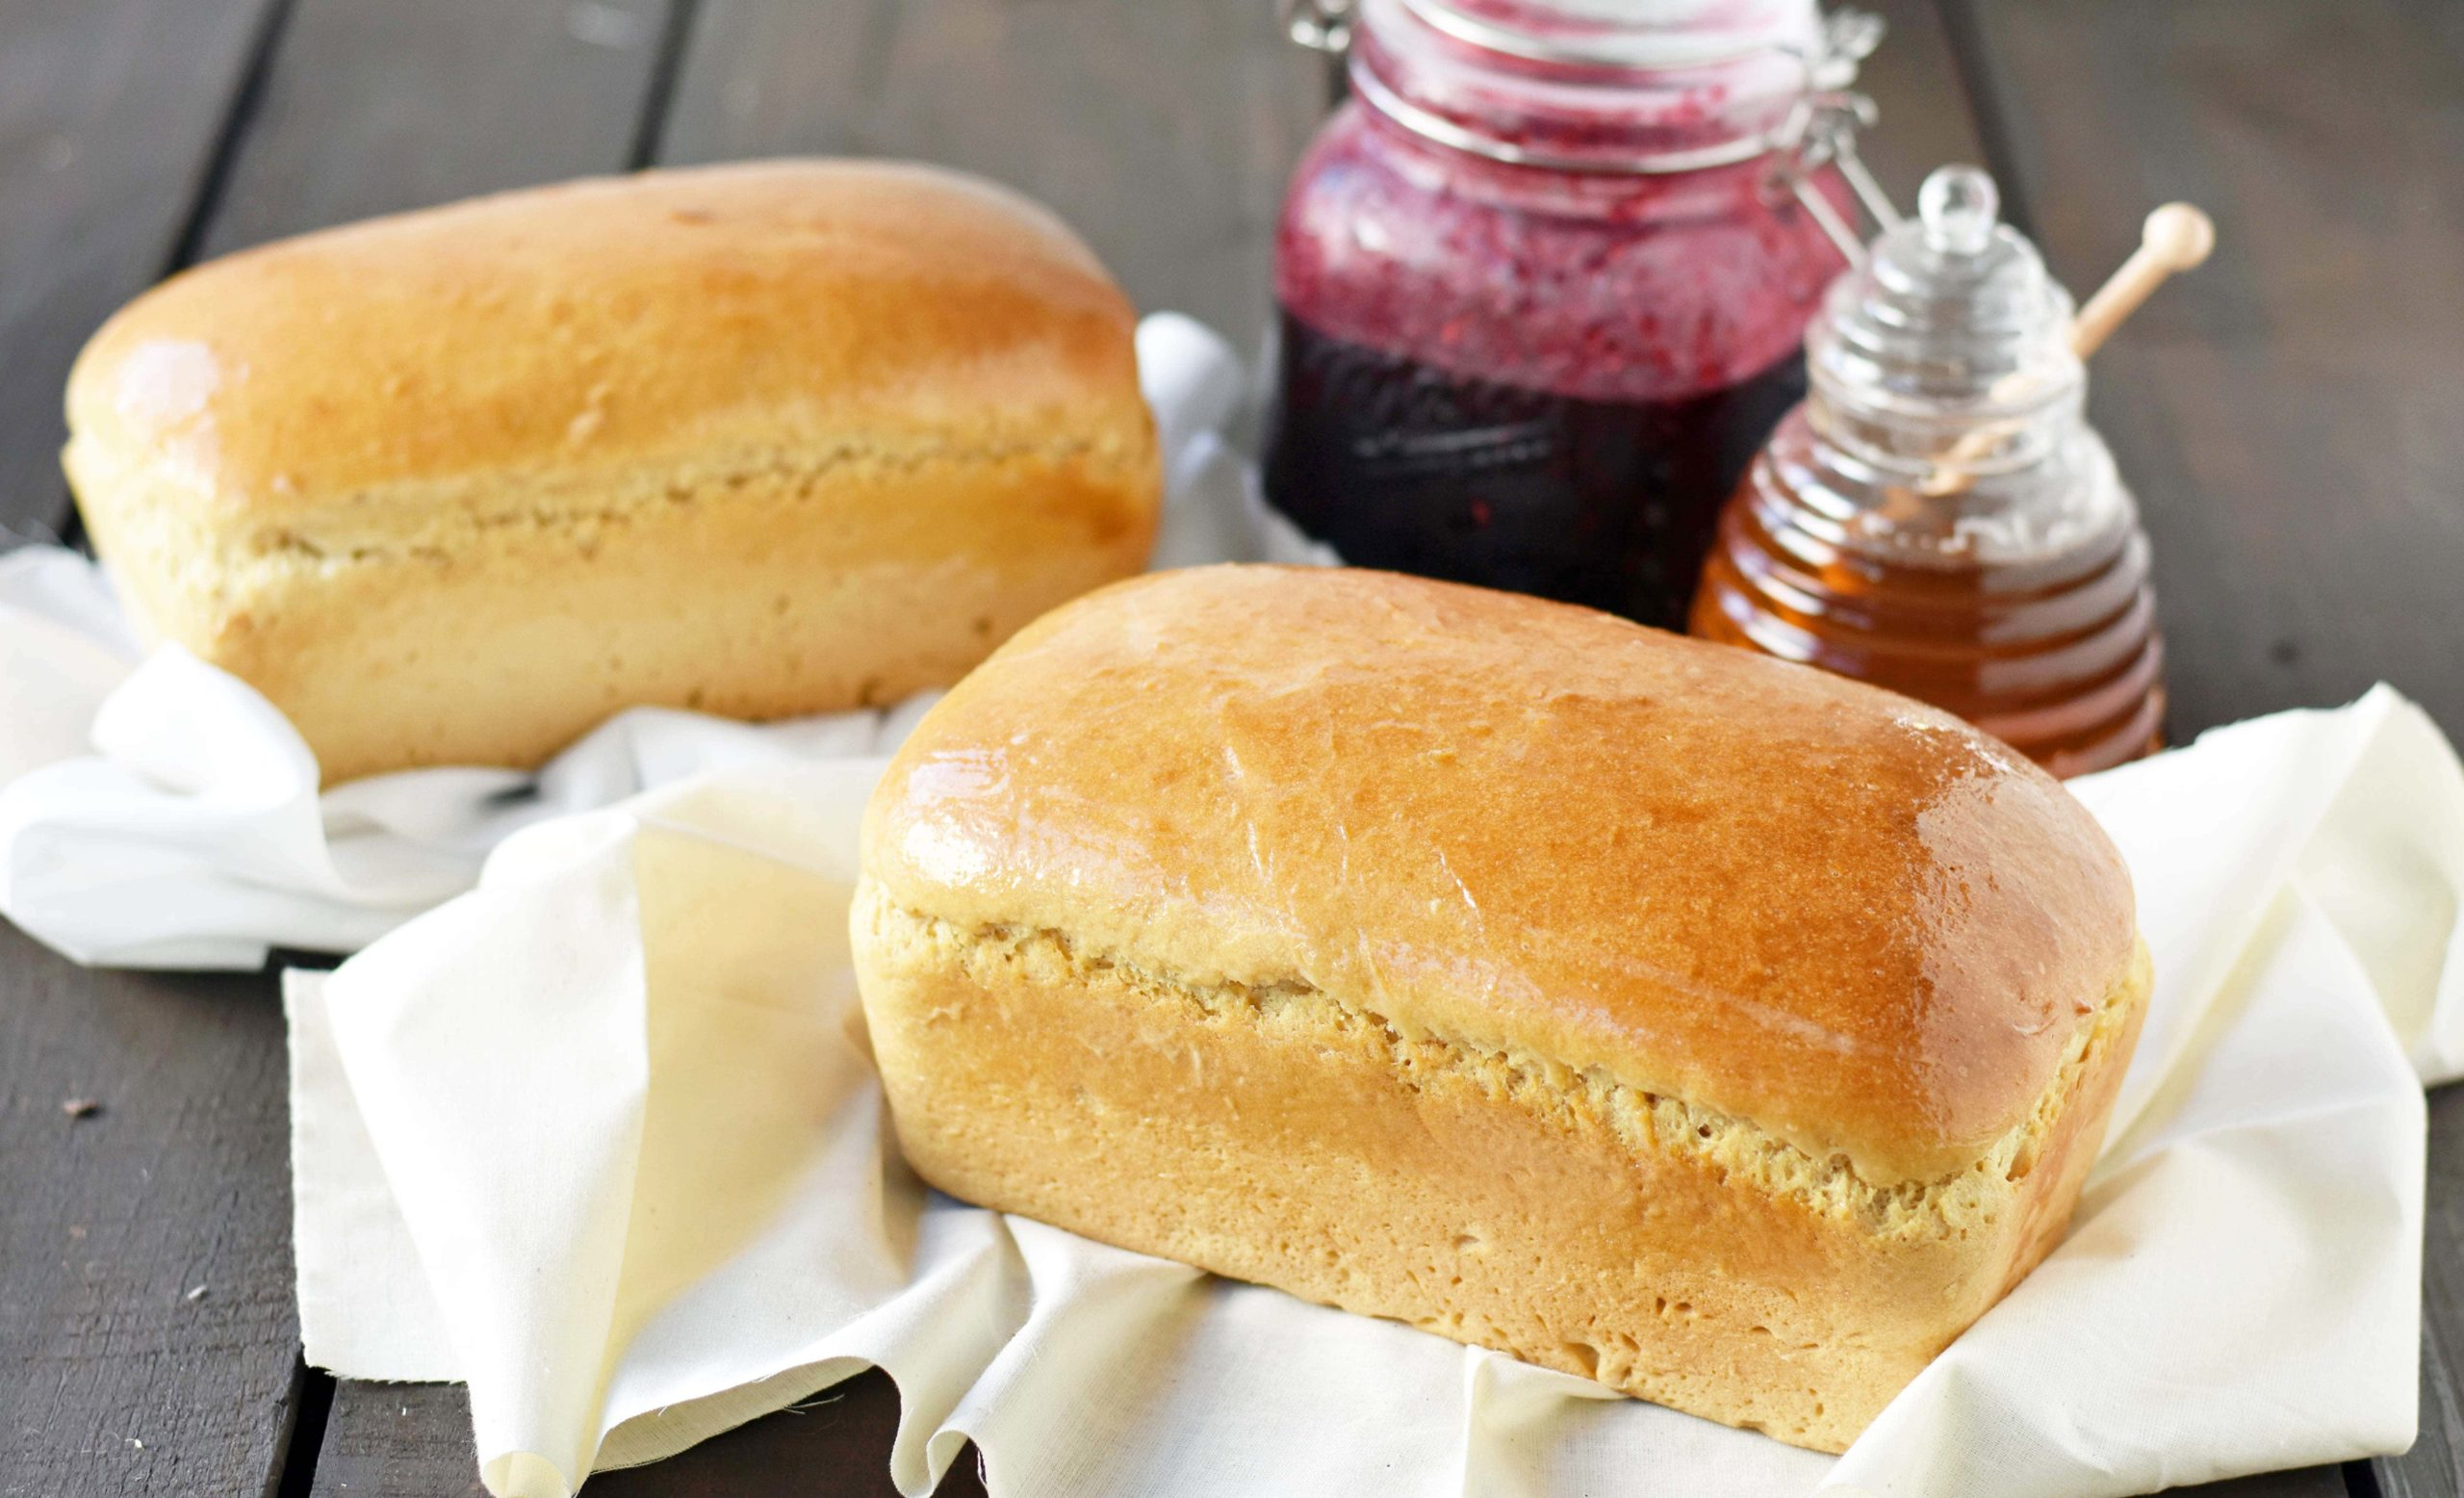 Two baked loafs of bread with jam and honey on the side